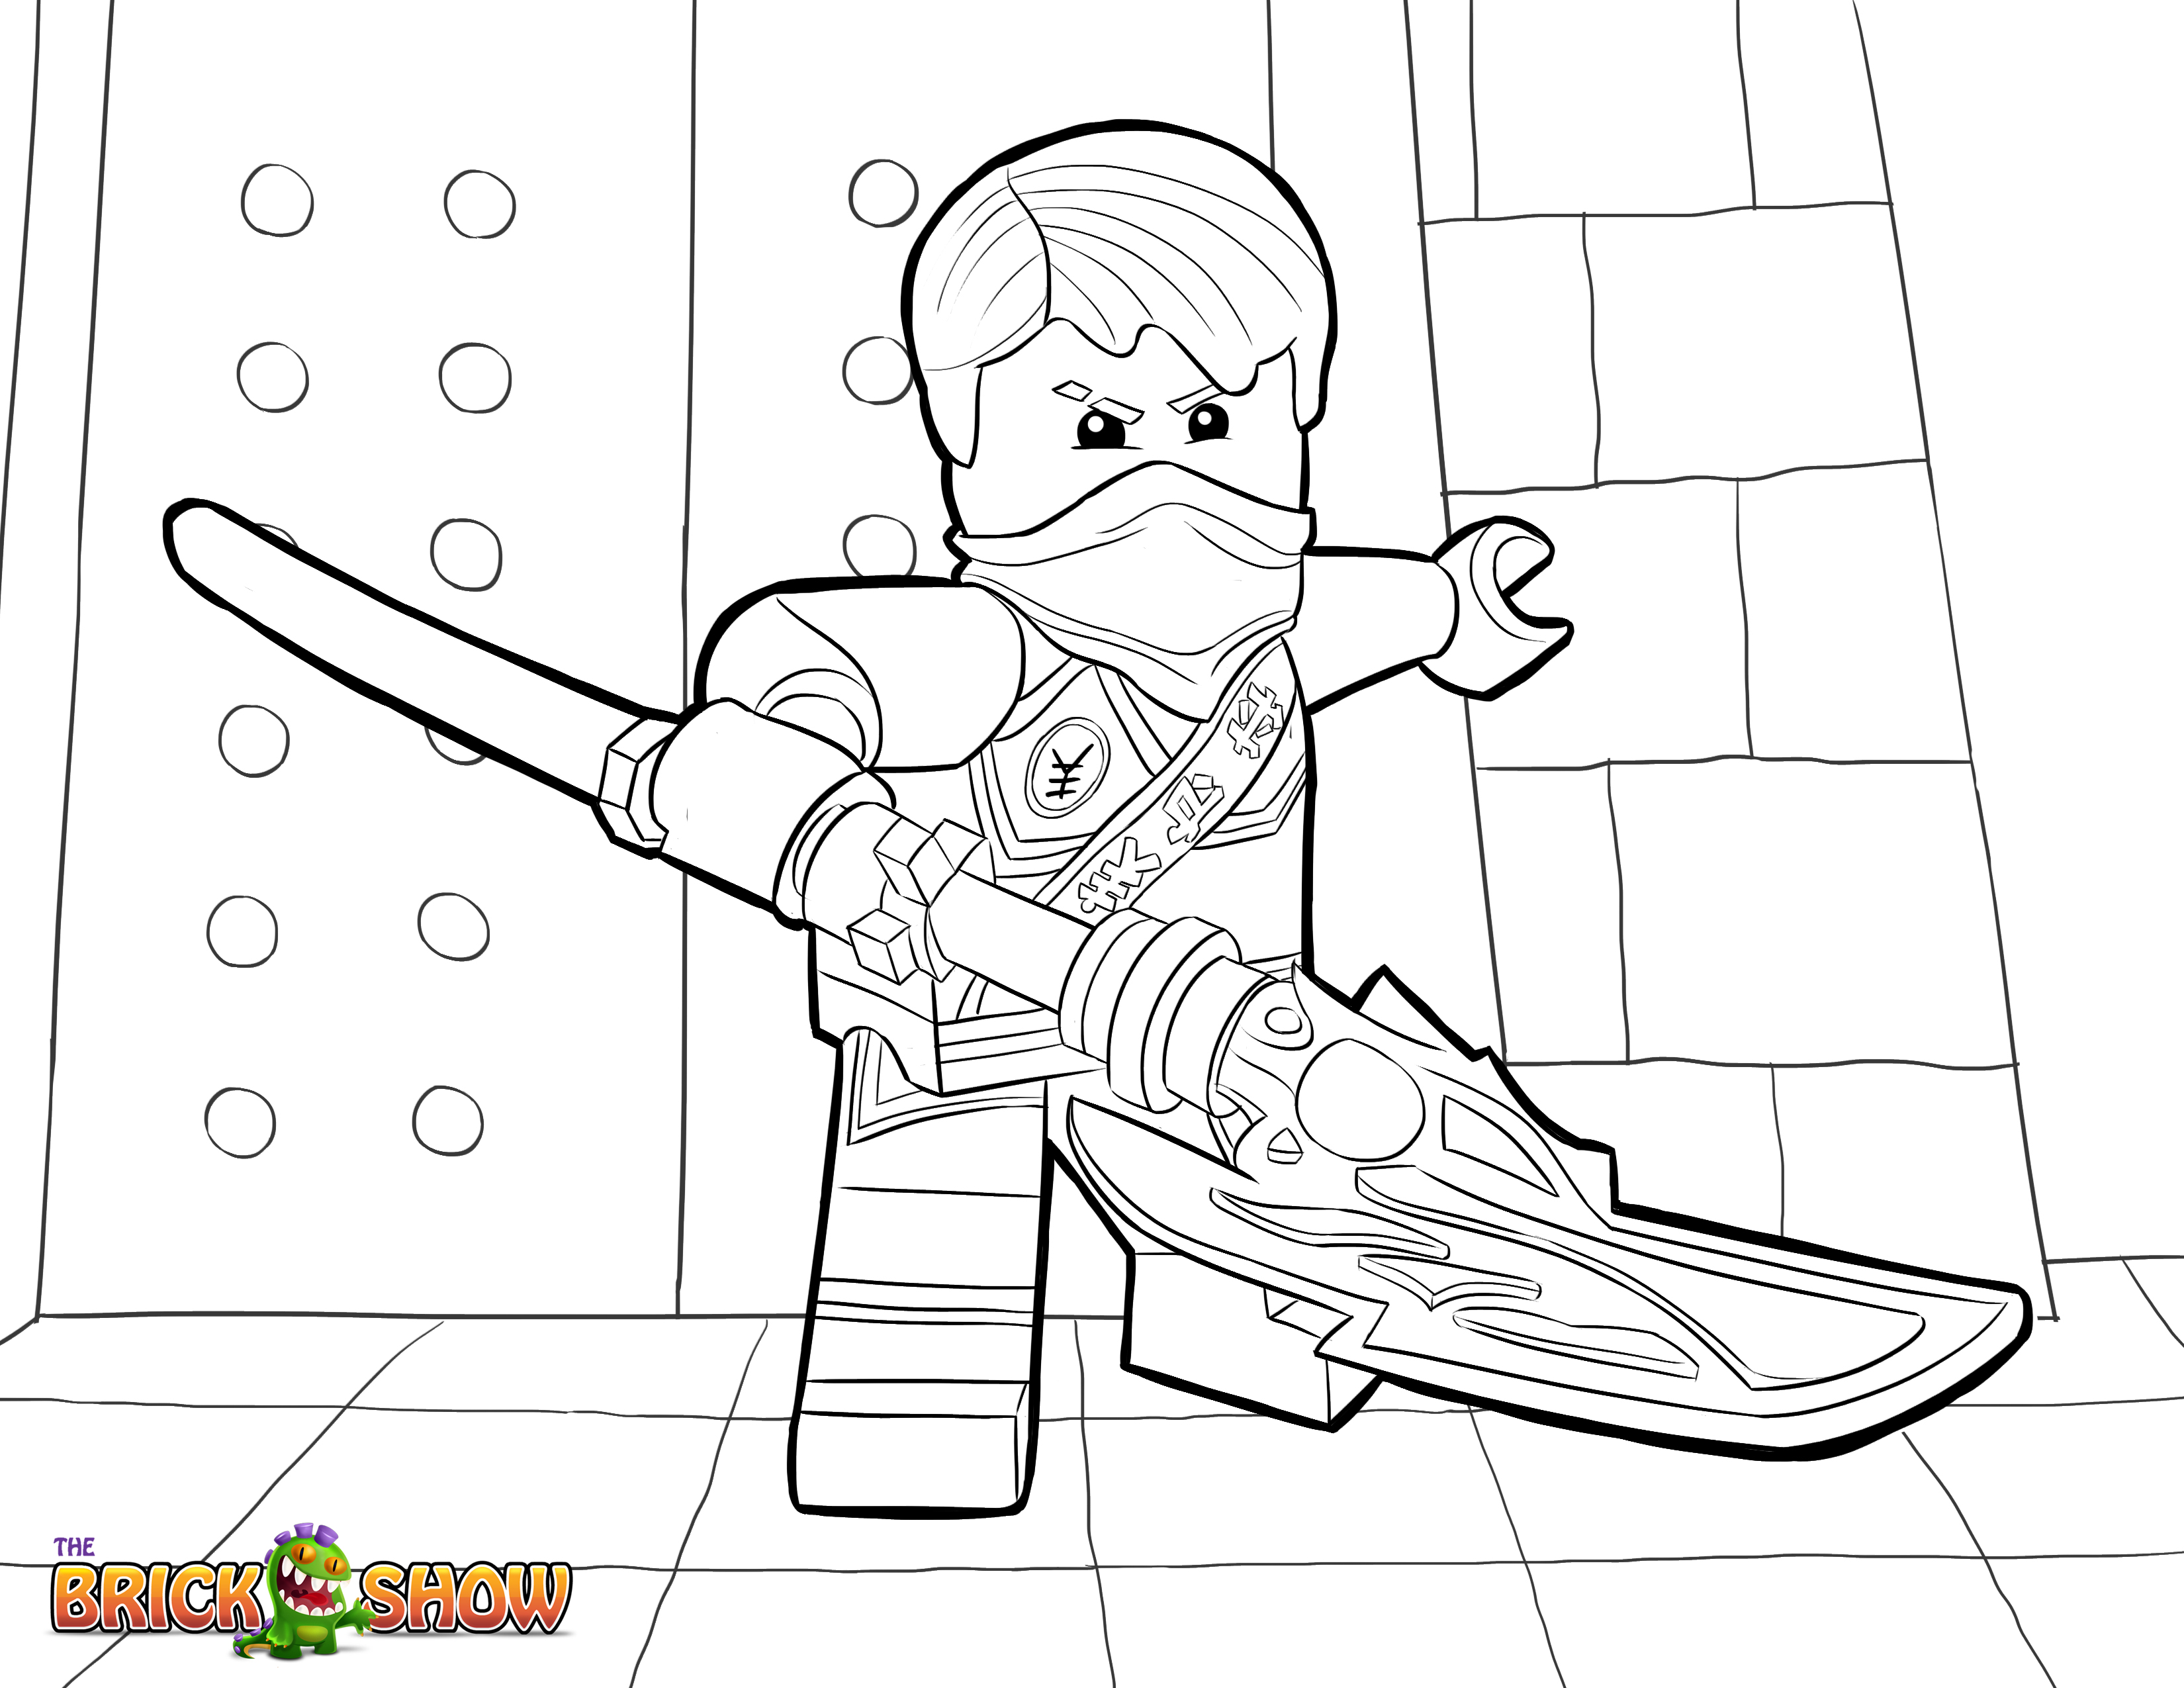 jay ninjago printable coloring pages - photo#9